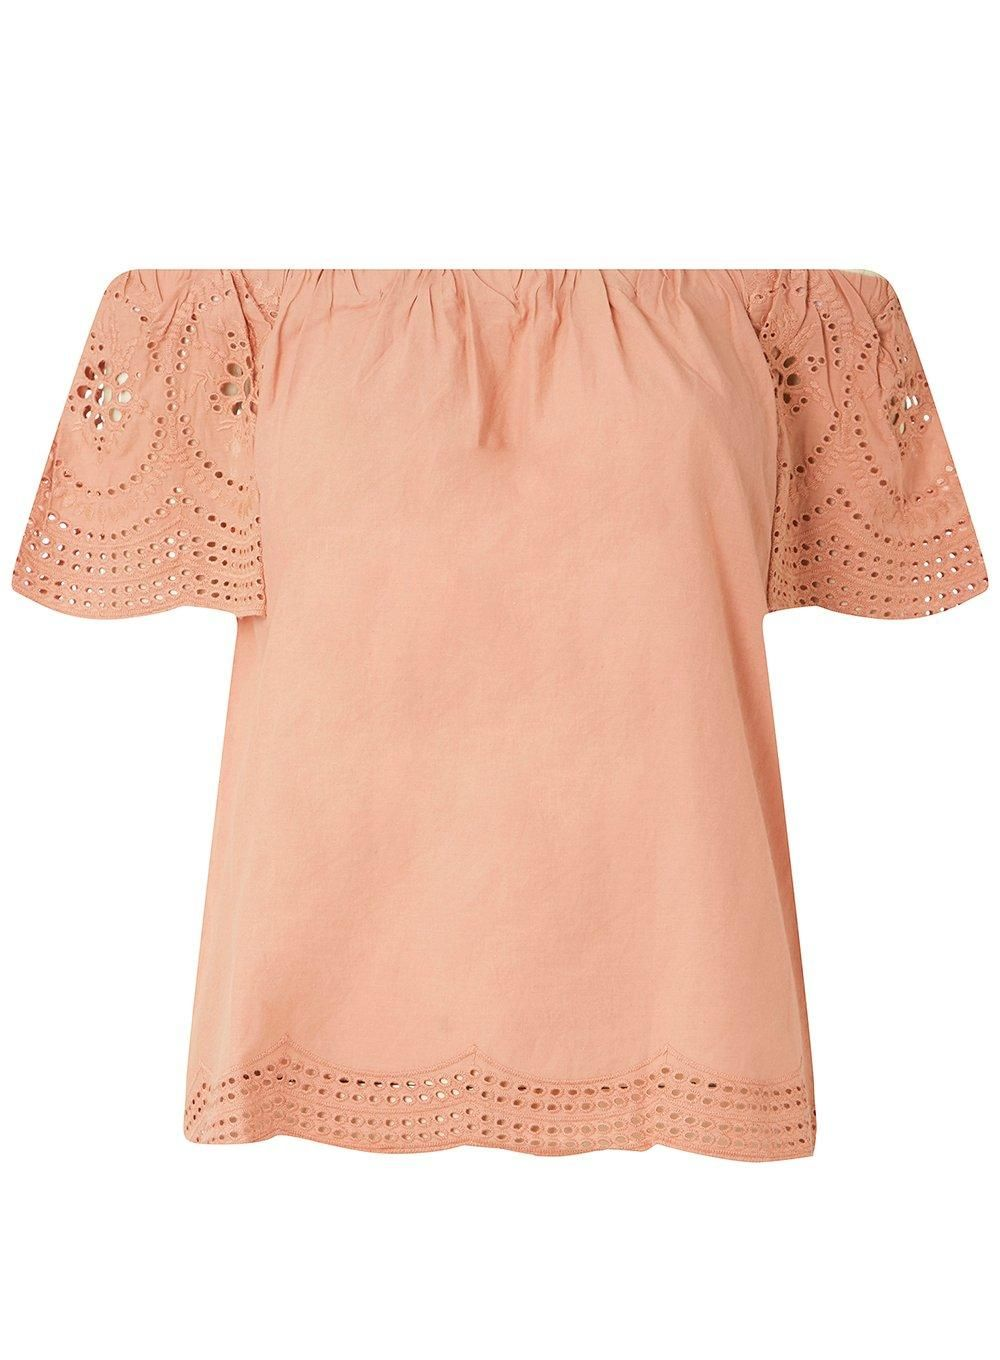 902d63d32a0e5 Pink Broderie Sleeve Bardot Top - New In Clothing - New In - Dorothy  Perkins United States